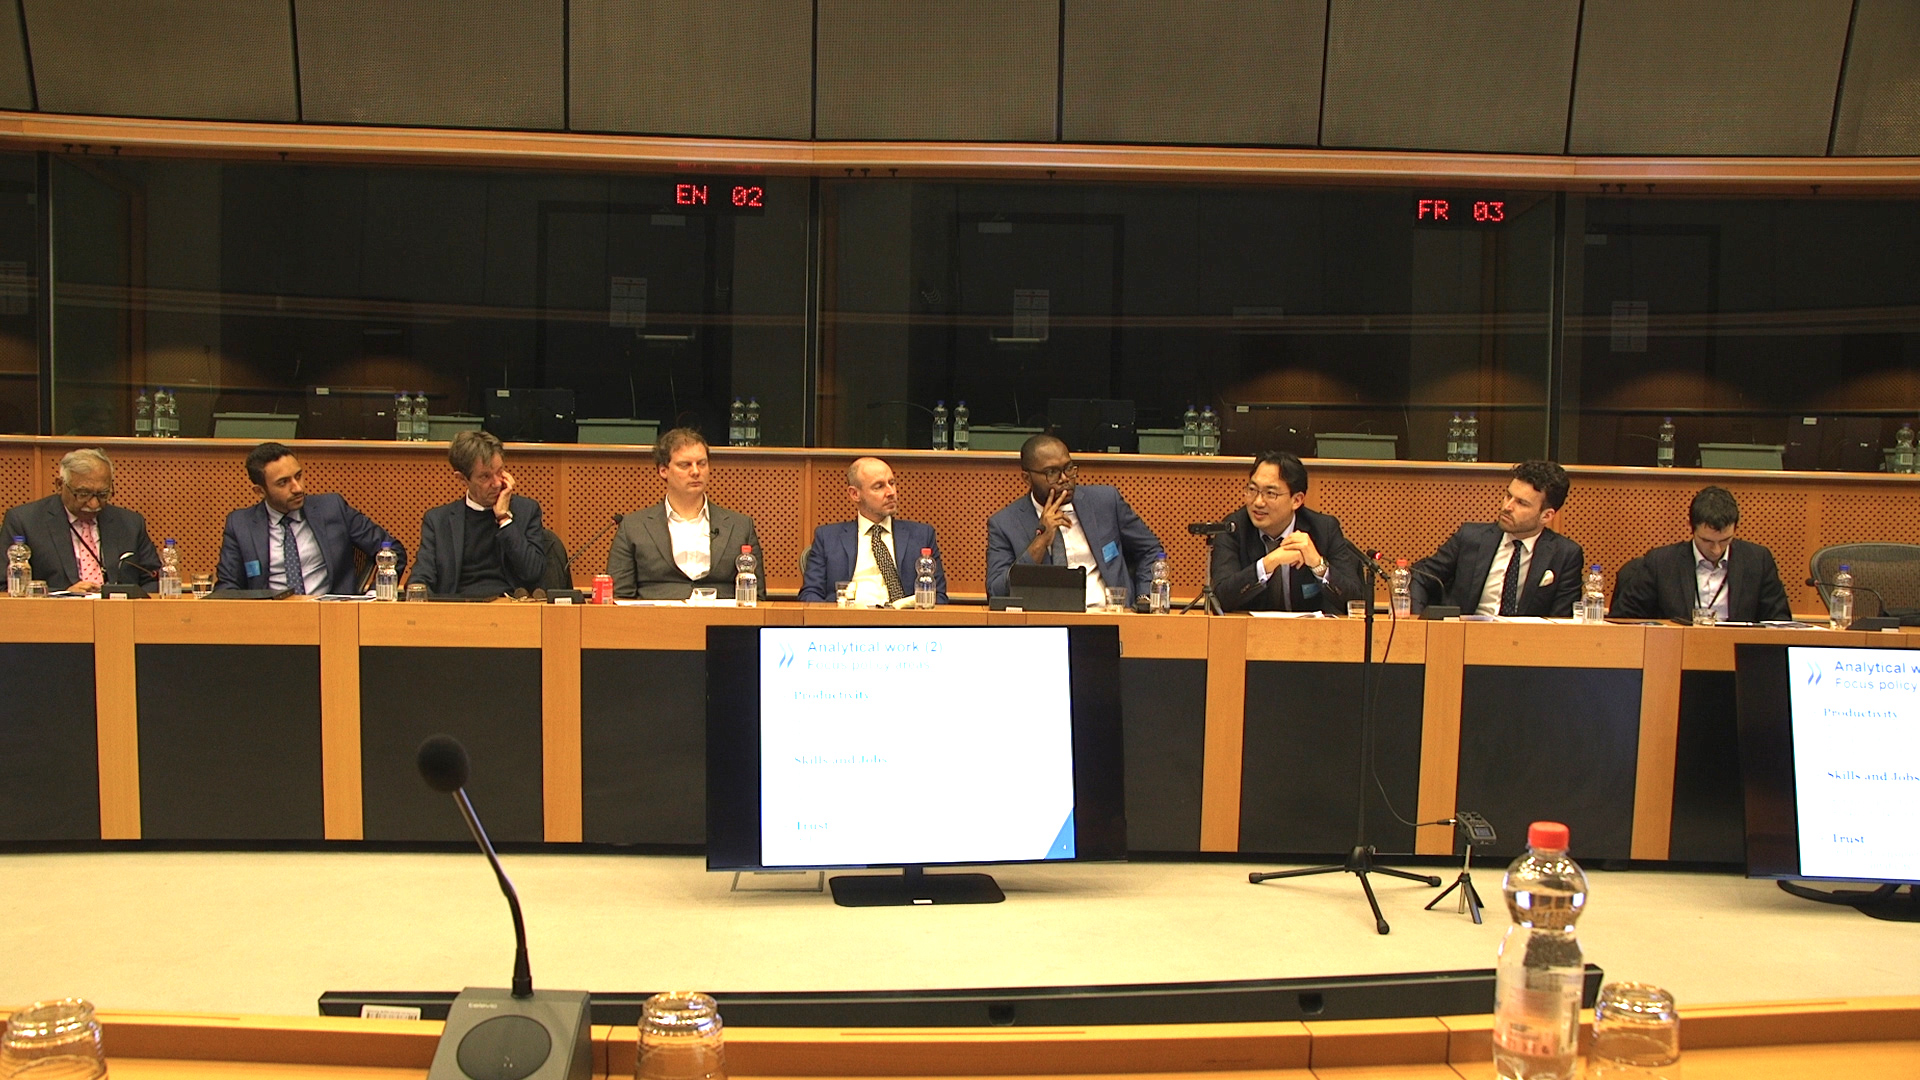 Future of Artificial Intelligence Roundtable Discussions in the European Parliament